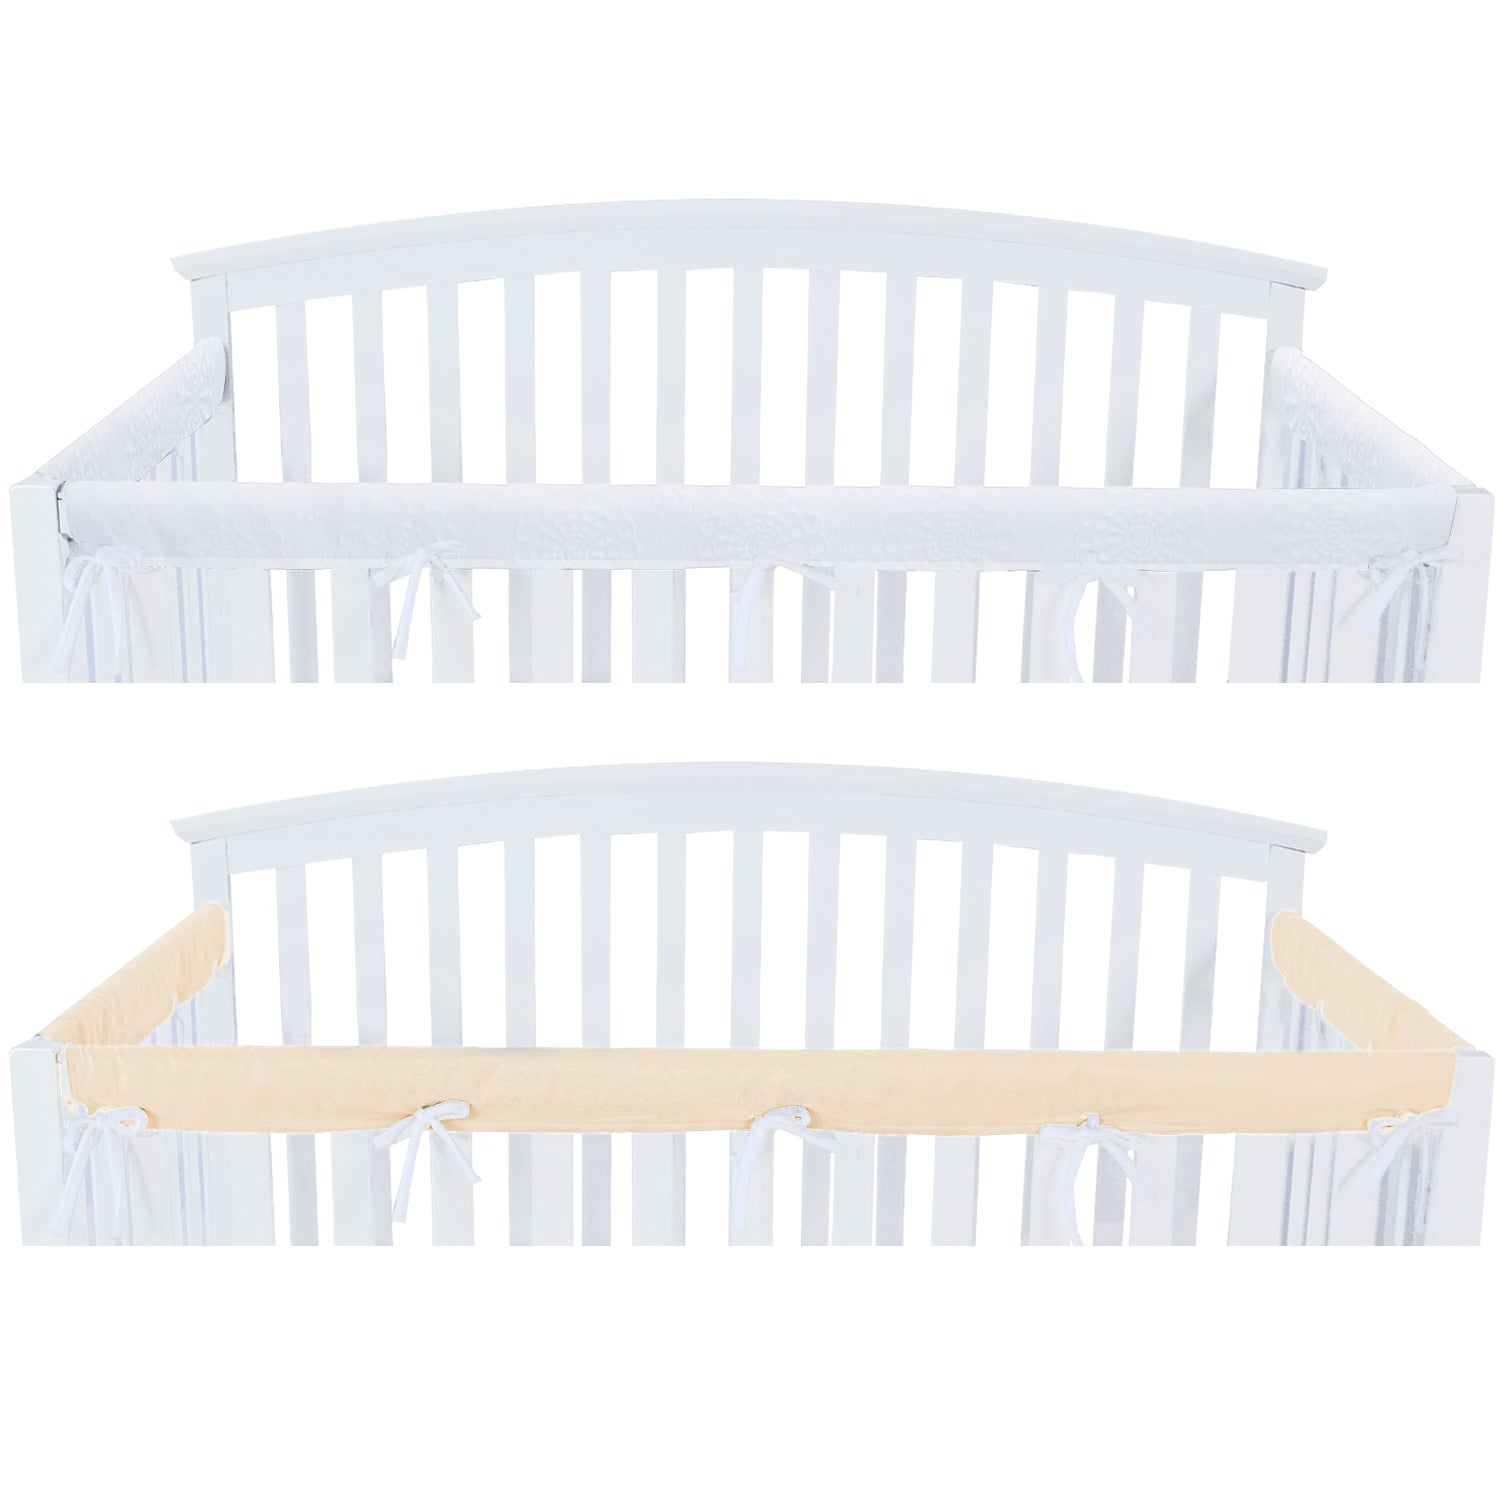 3 Pieces Crib Rail Cover Protector Safe Teething Guard Wrap Yellow Biloban Online Store